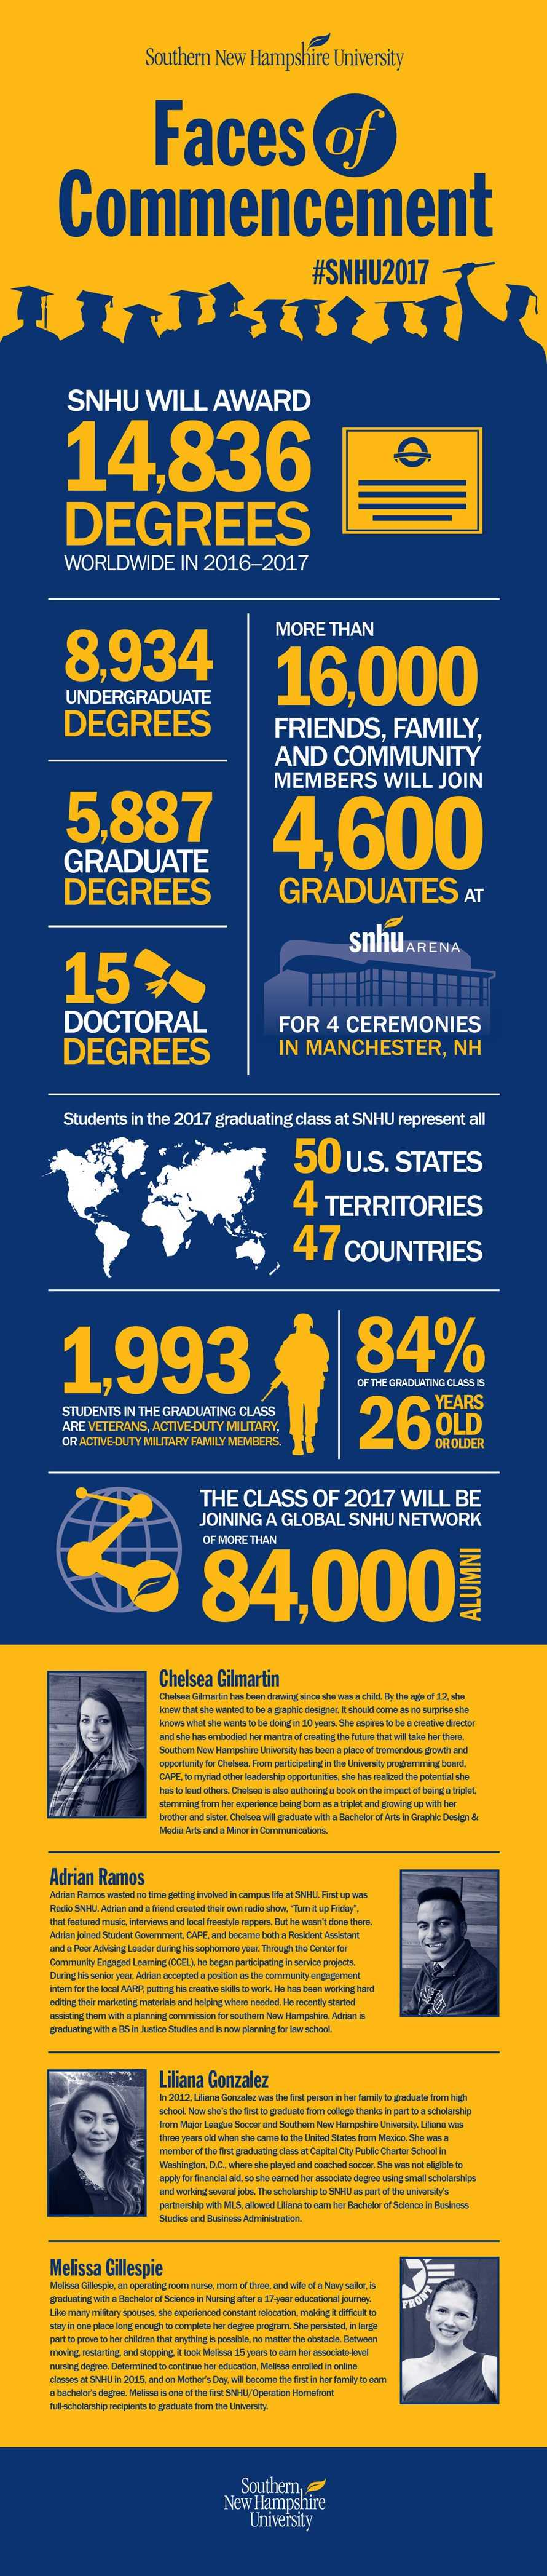 Faces of Commencement Infographic